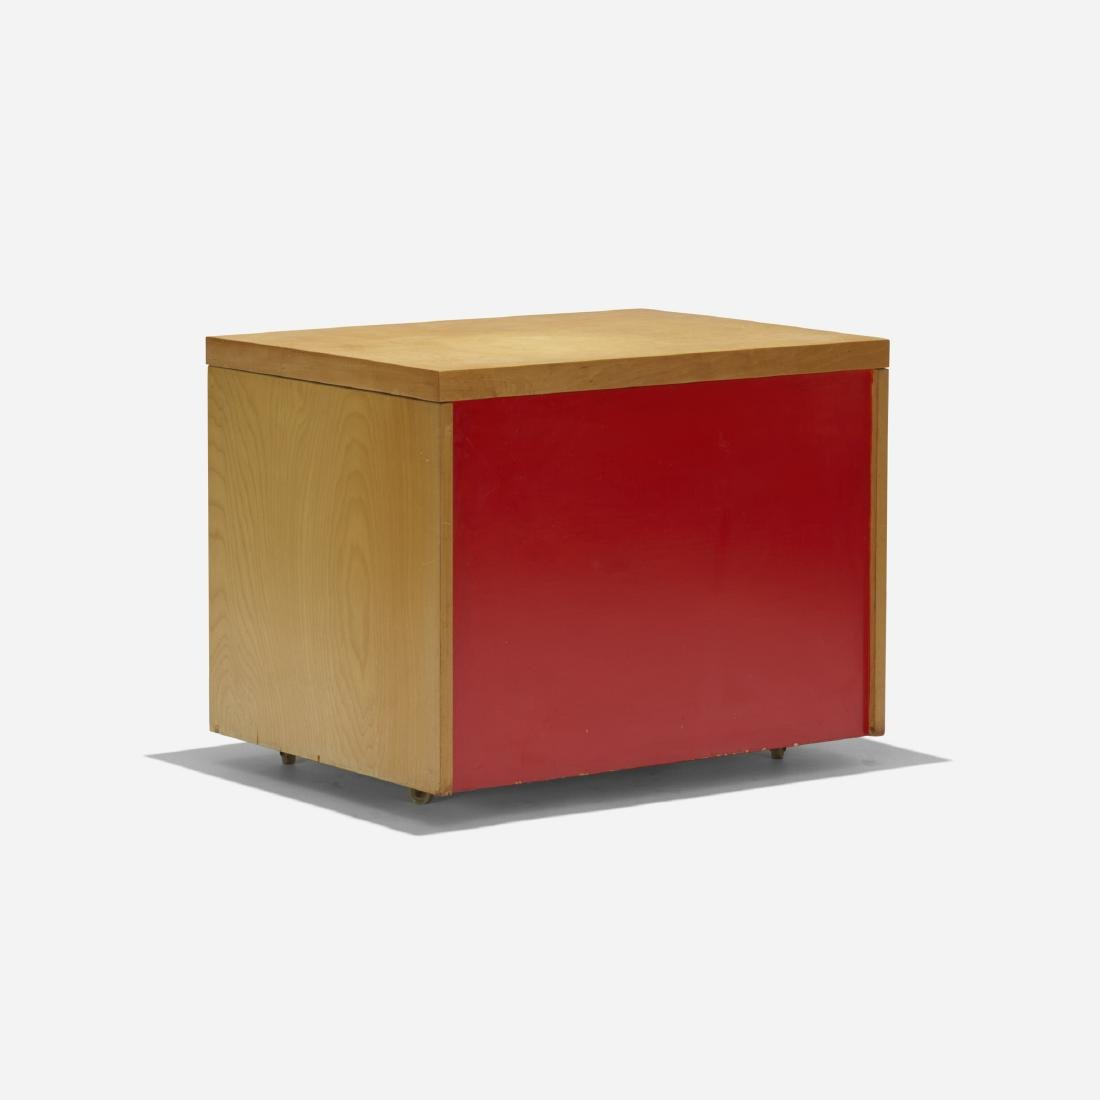 Paul Rand, custom rolling cabinet for the Rand House